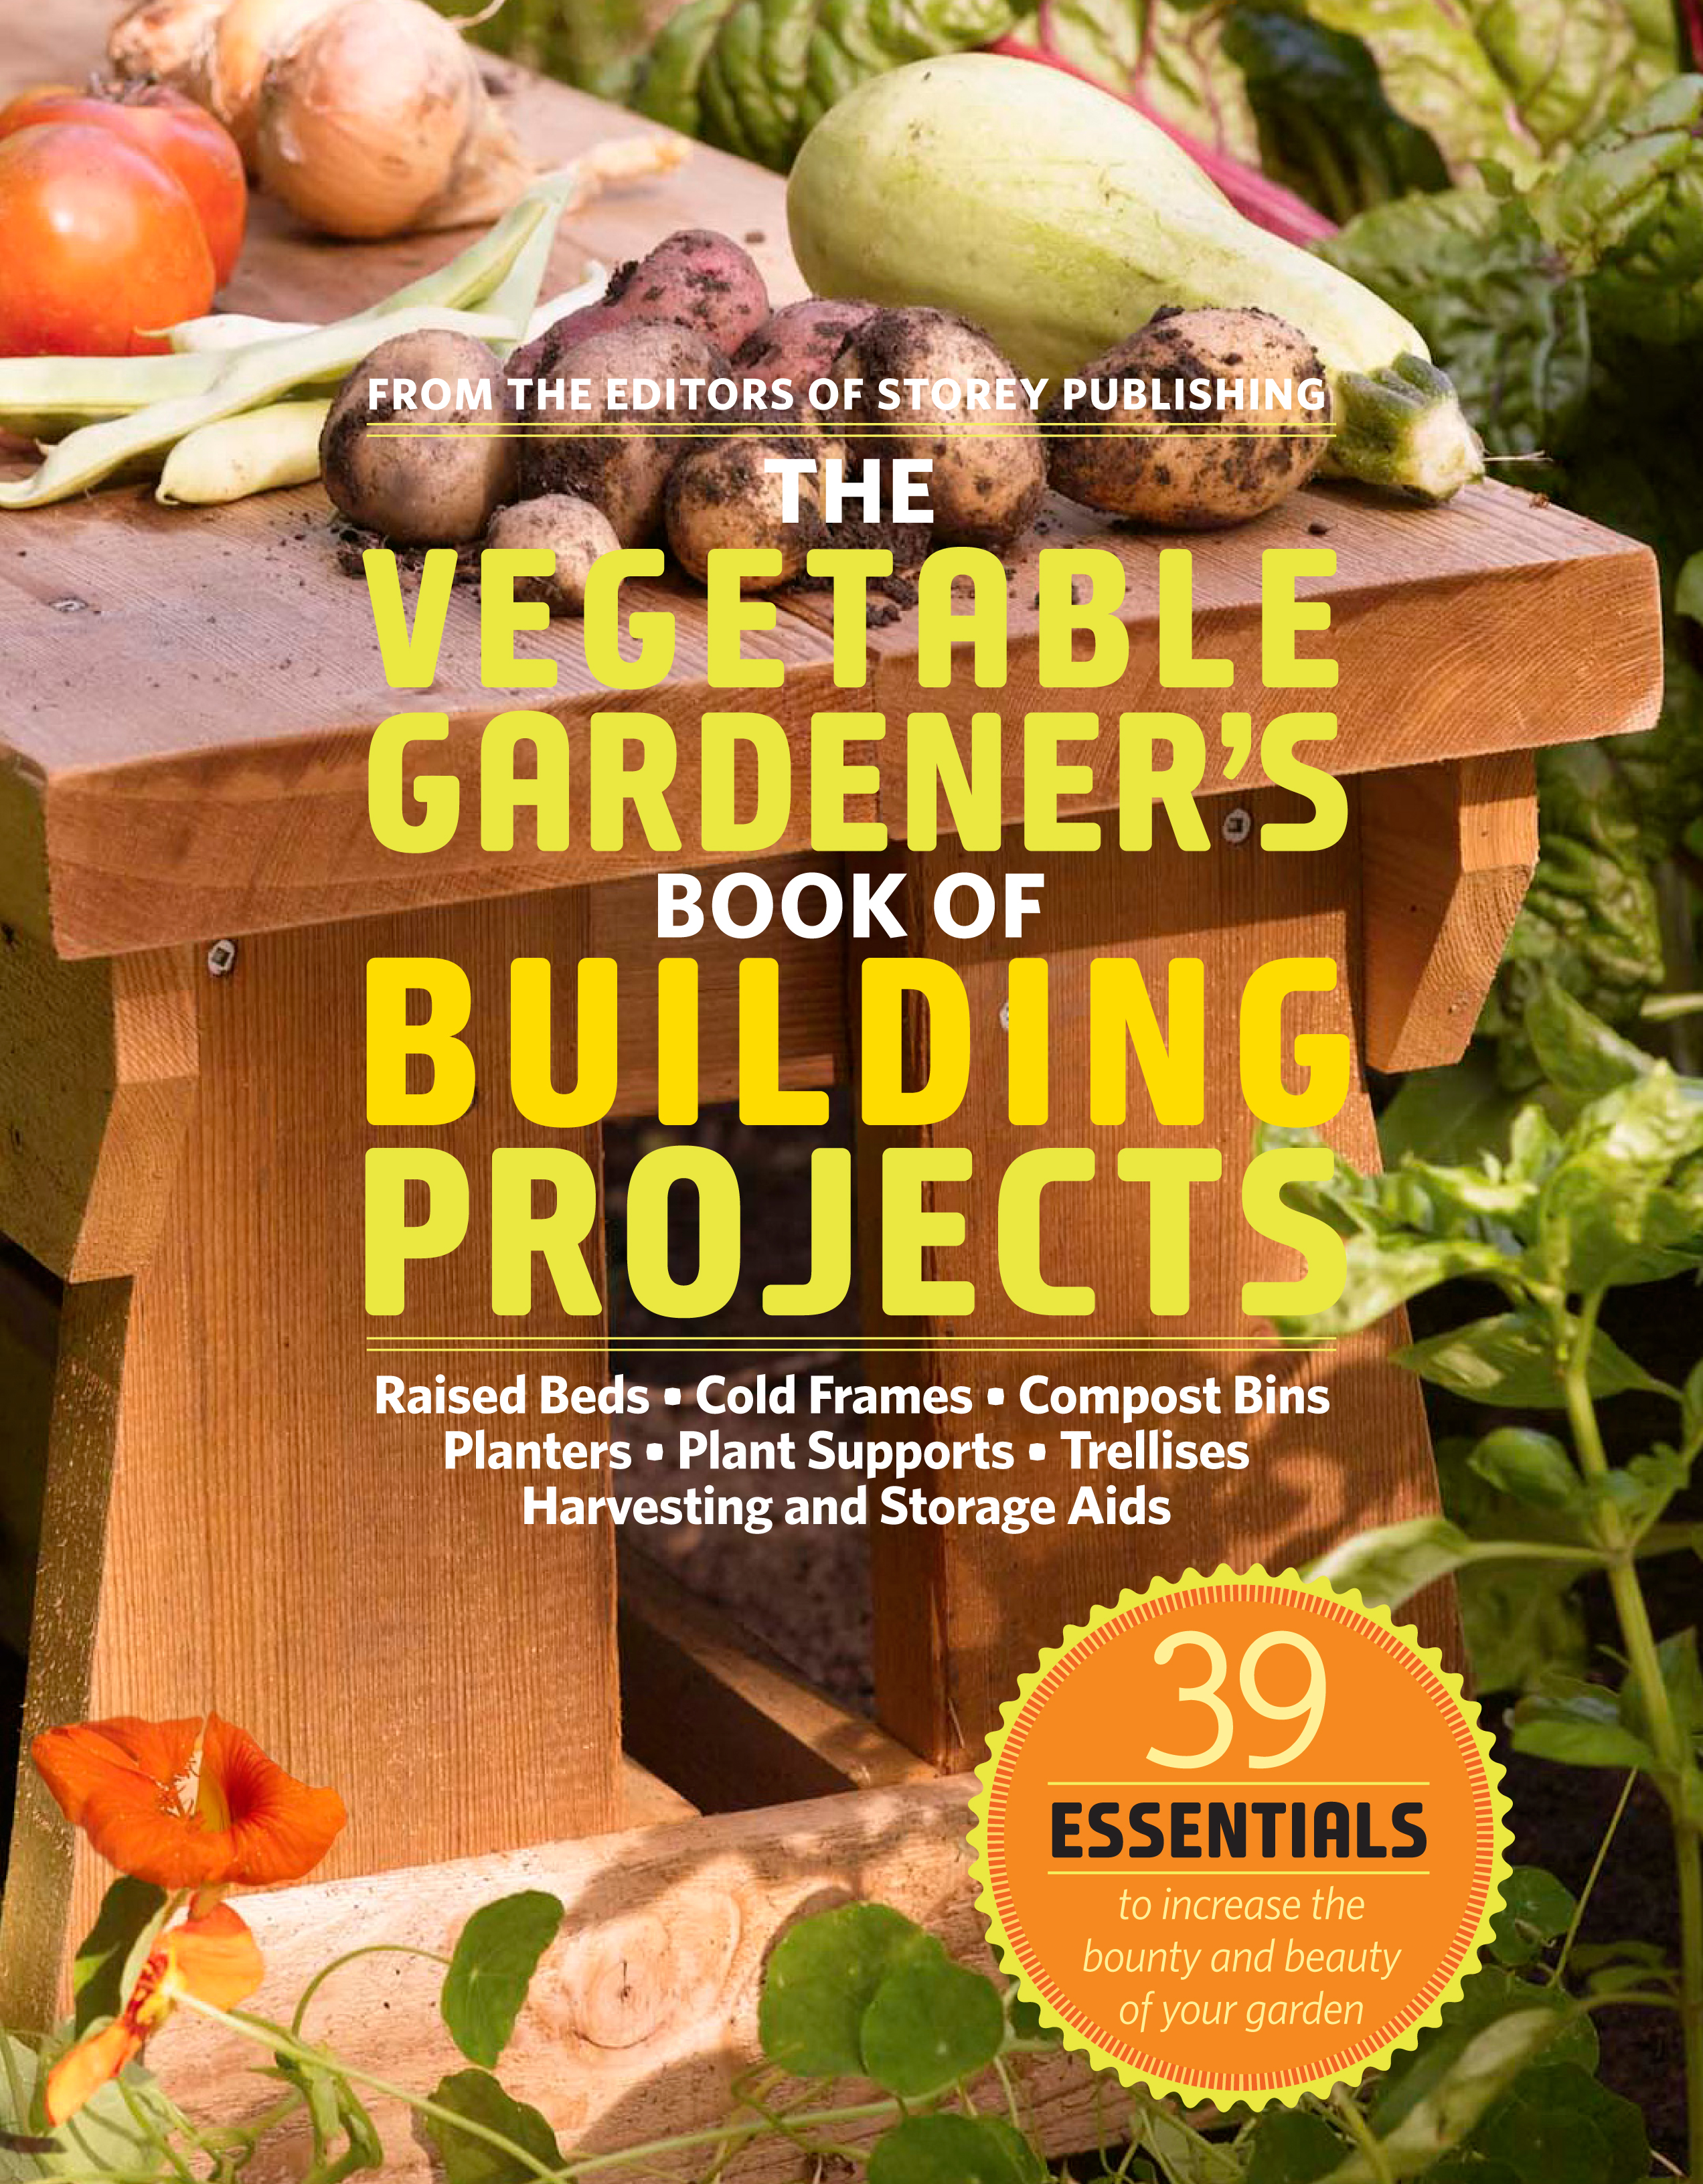 The Vegetable Gardener's Book of Building Projects 39 Indispensable Projects to Increase the Bounty and Beauty of Your Garden - Editors of Storey Publishing